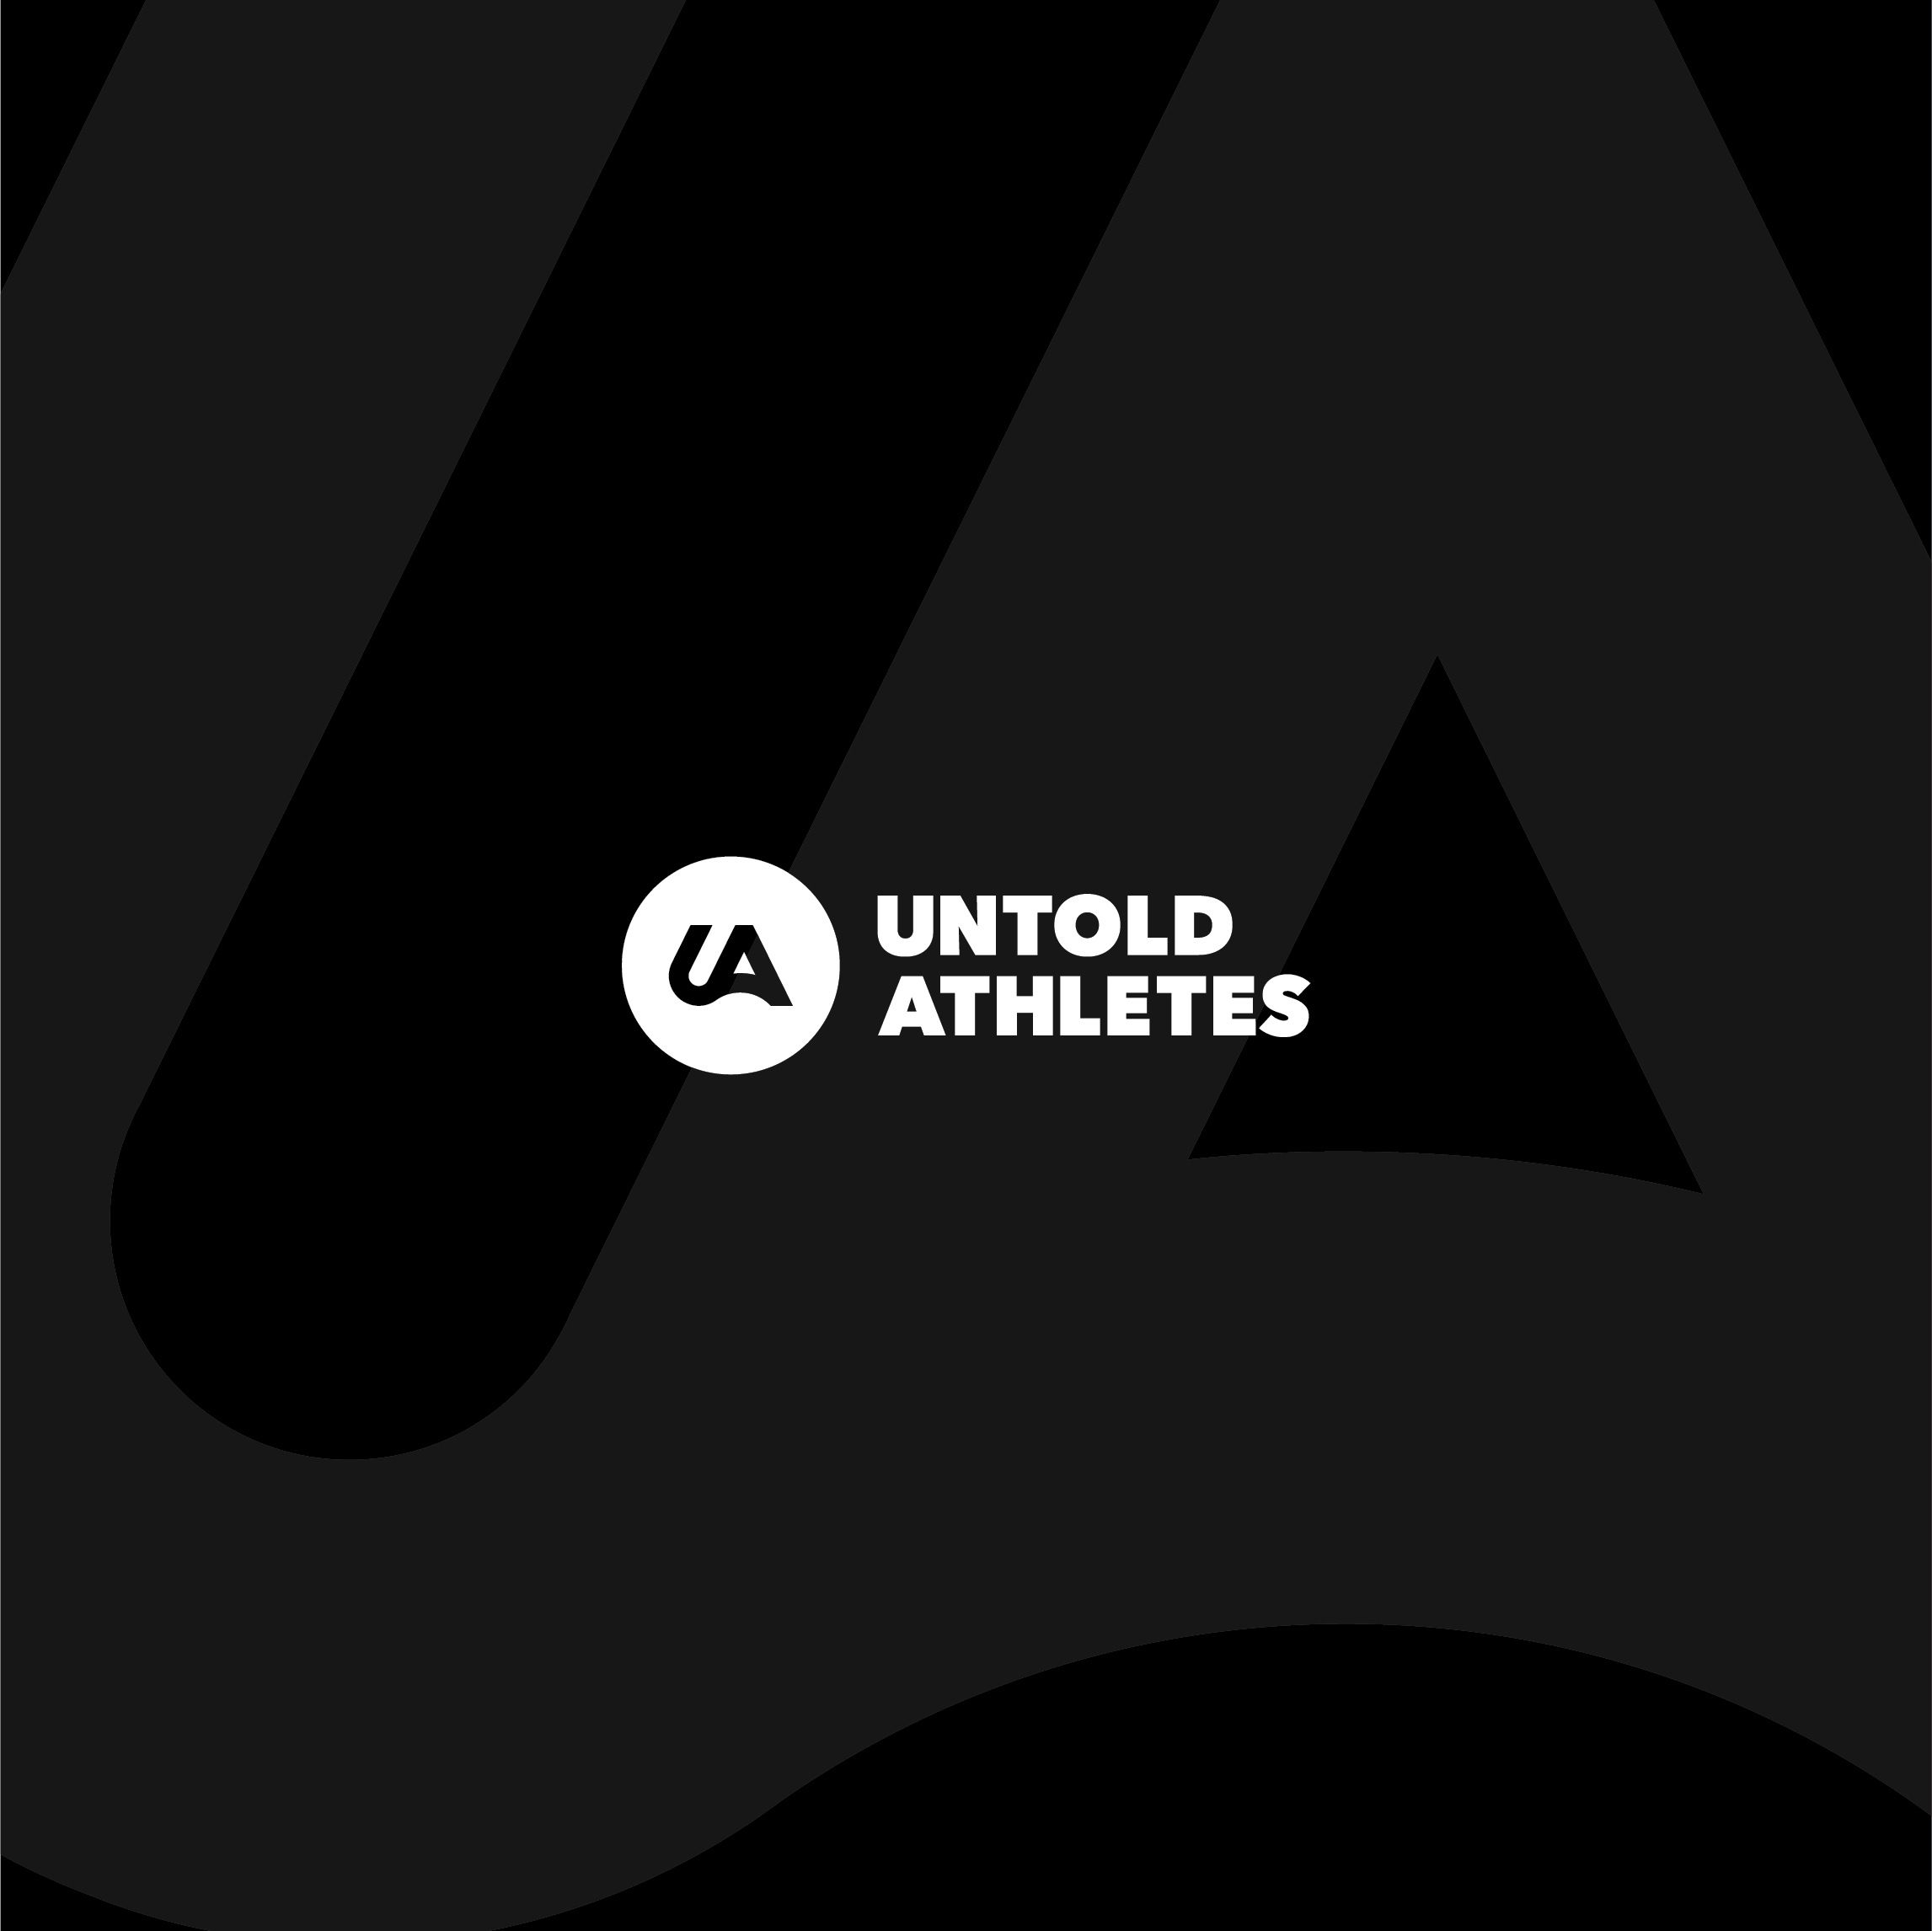 Untold Athletes In-House Design Team Releases New Logo and Brand Identity